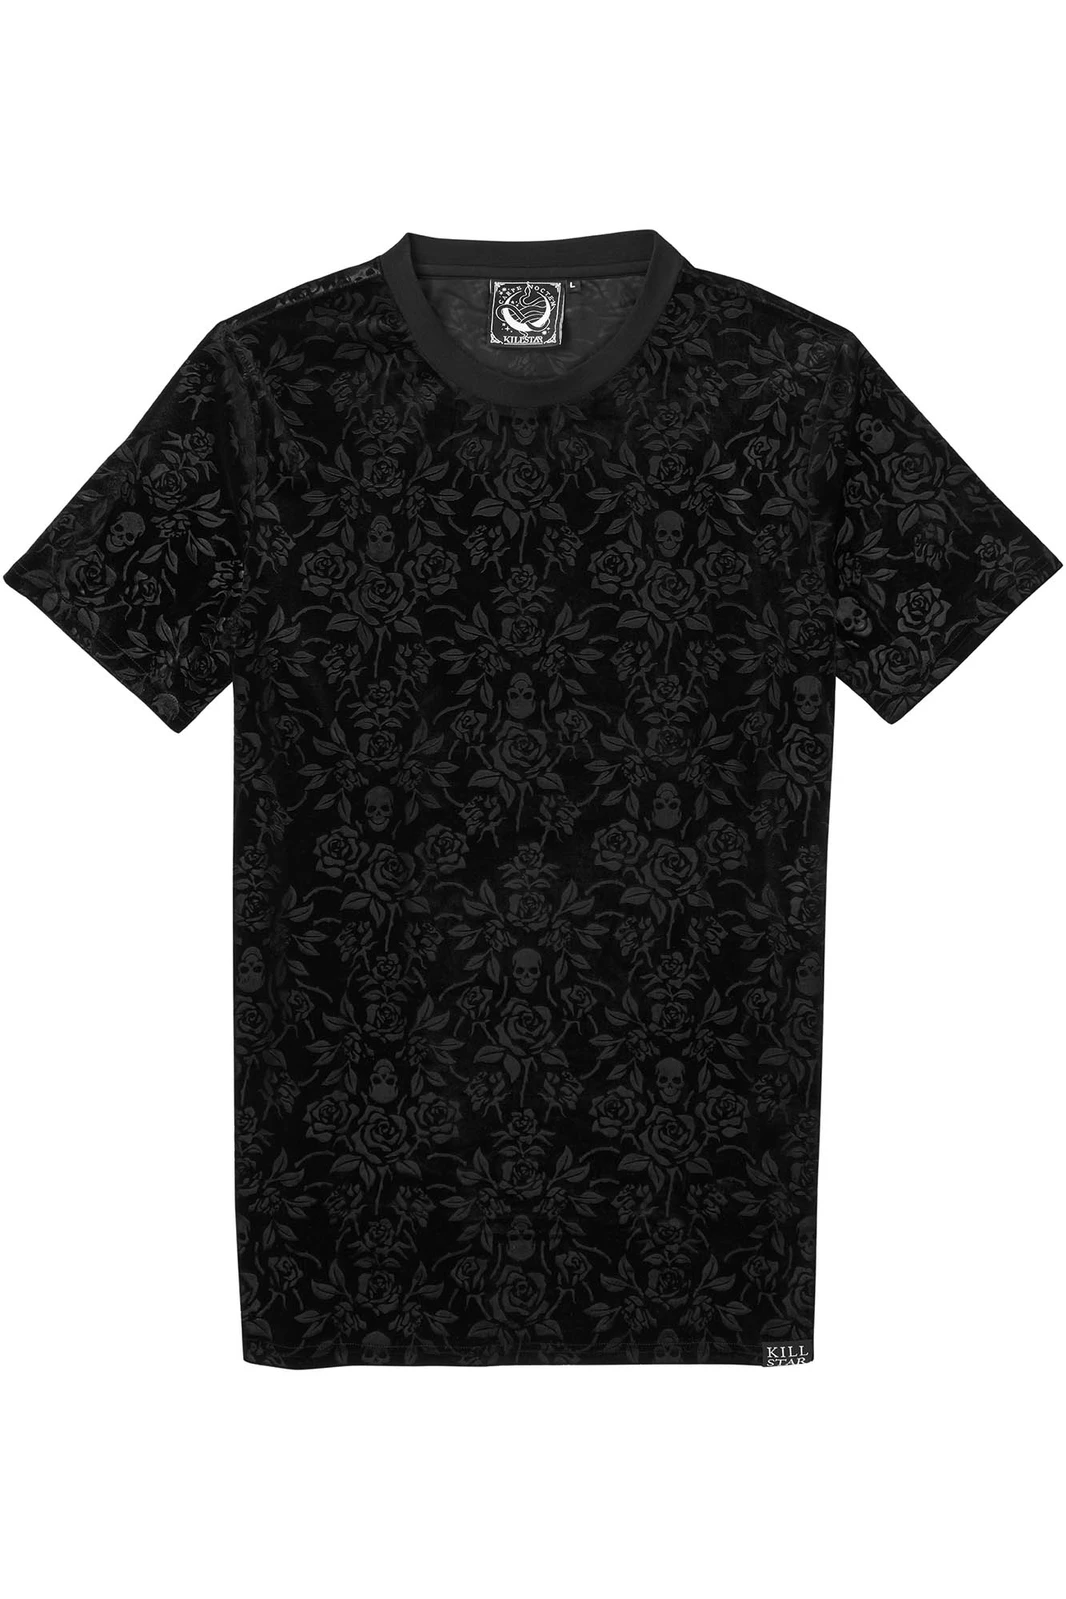 Nocturnal T-shirt Black